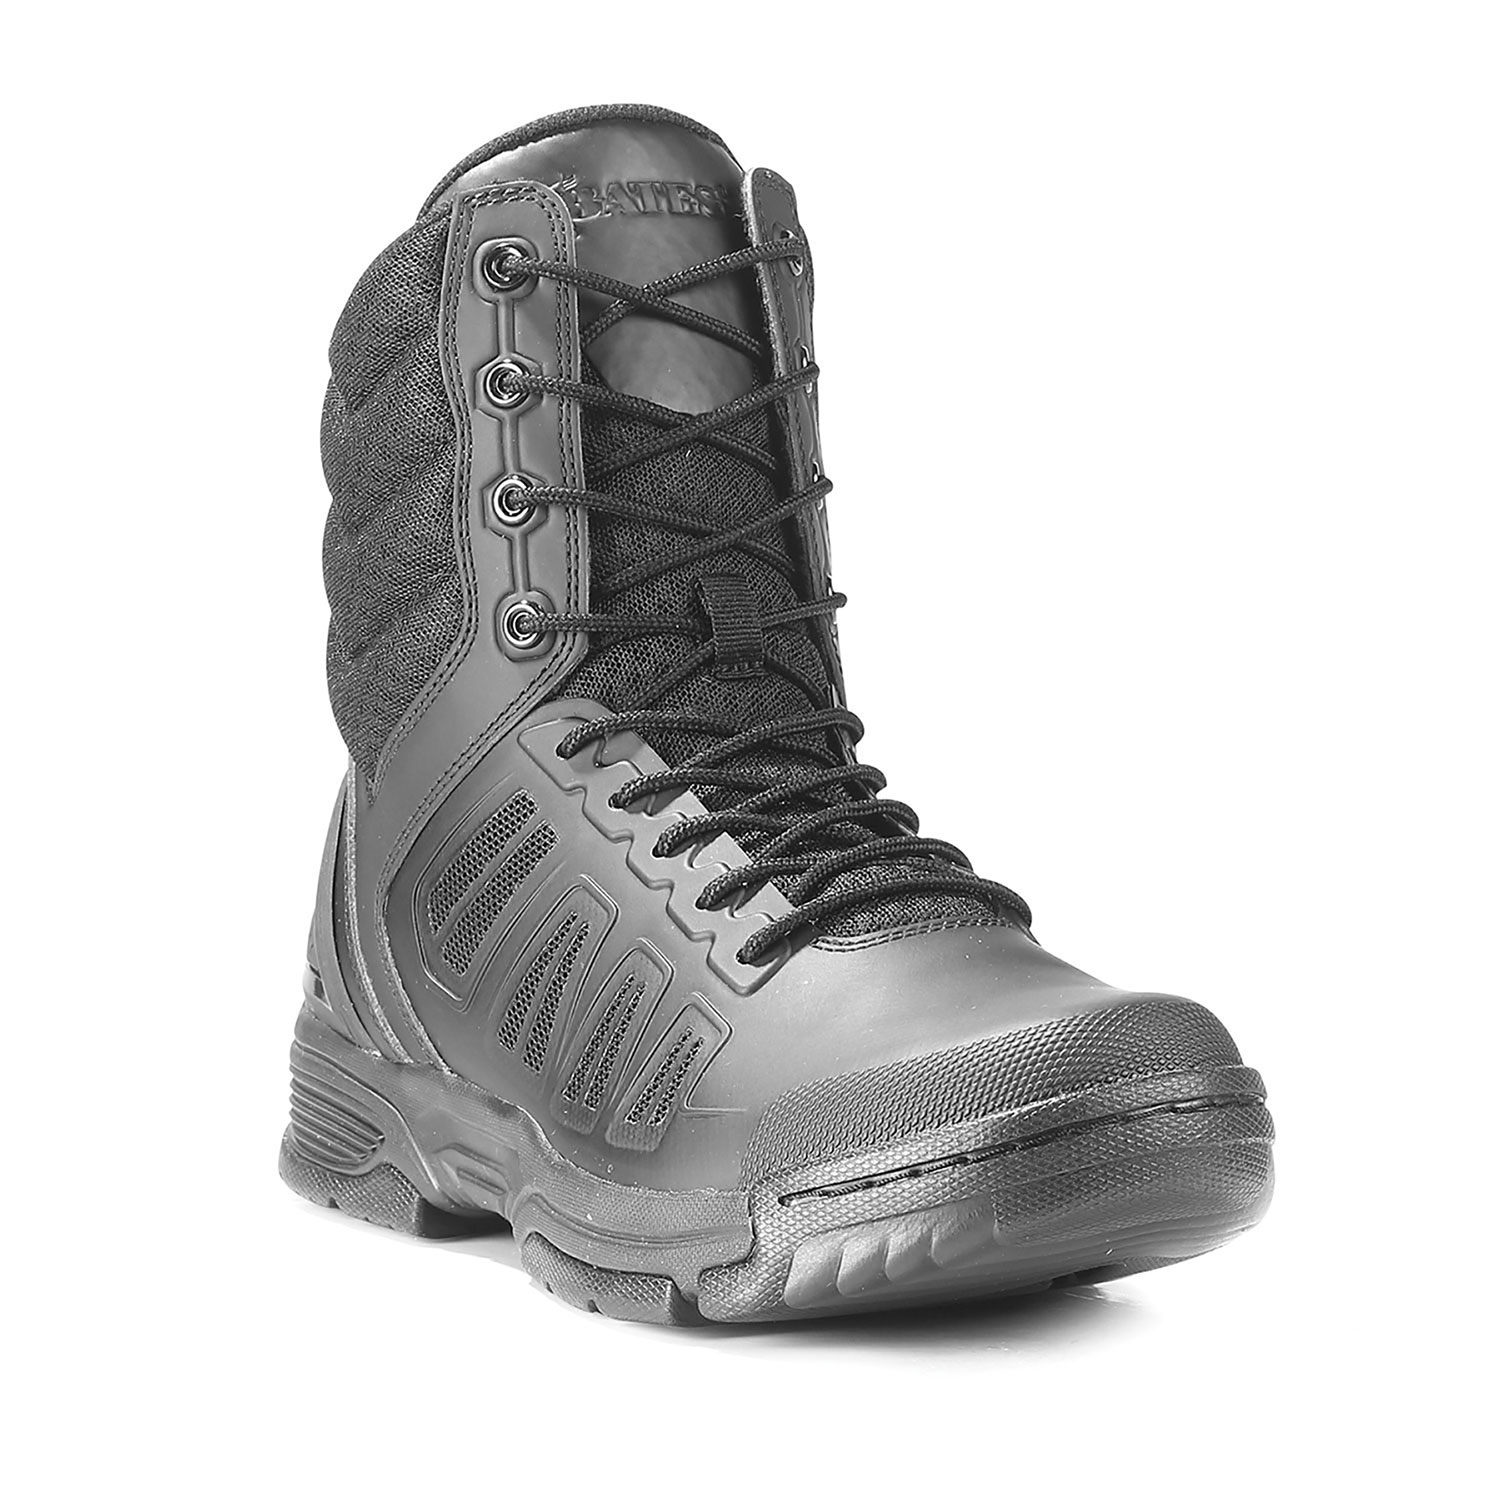 Bates SRT-7 Boot